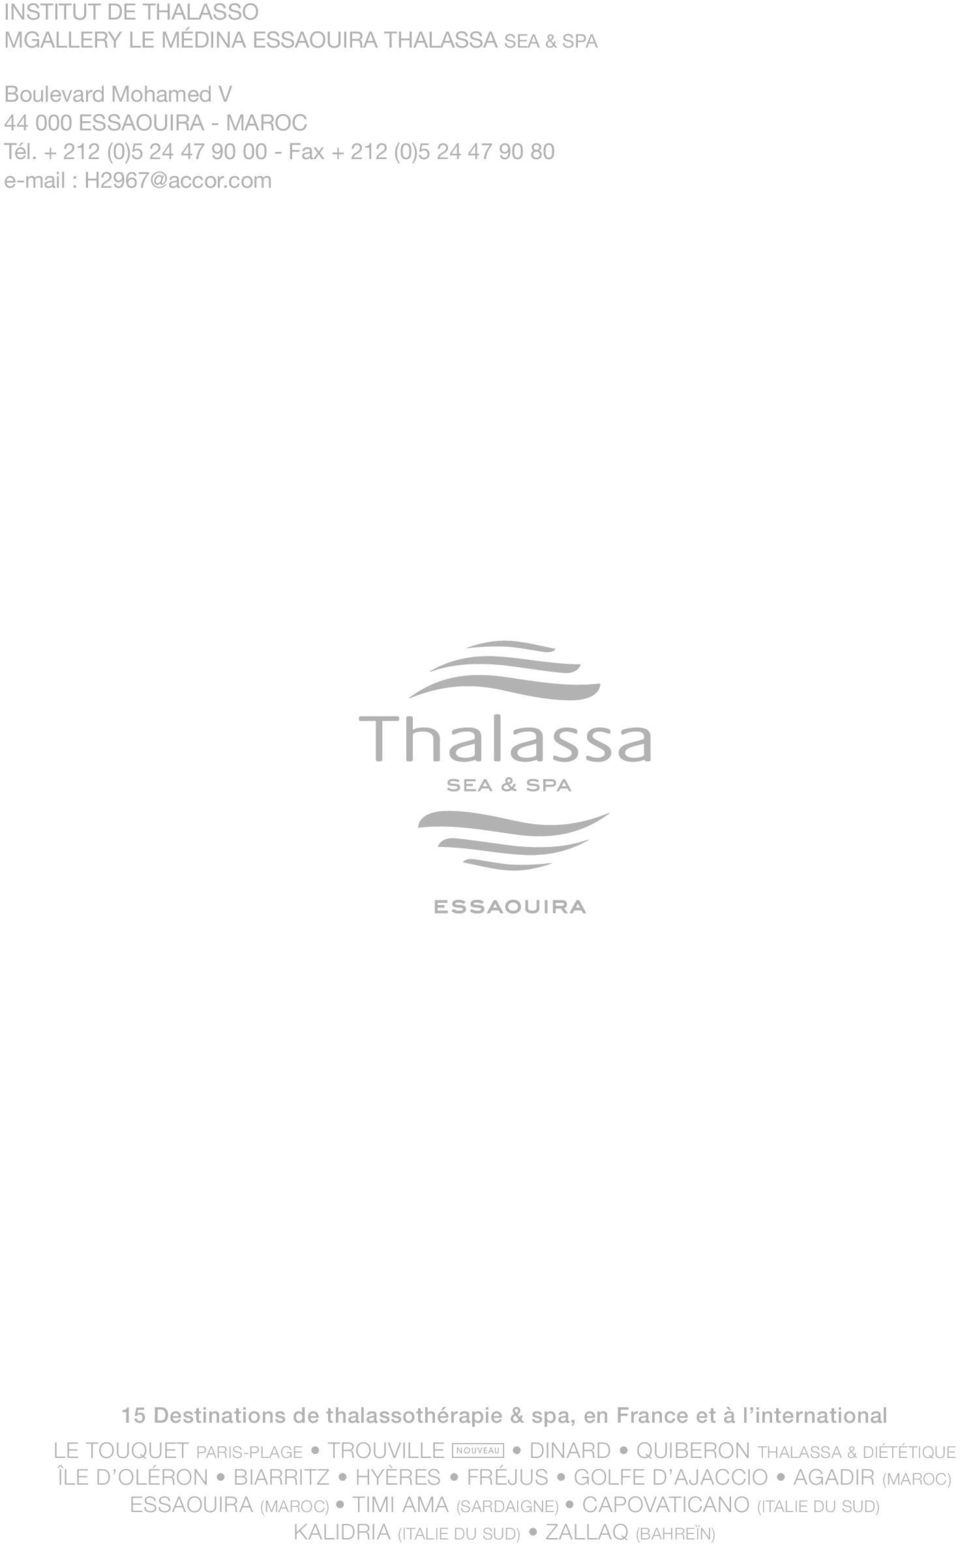 com 15 Destinations de thalassothérapie & spa, en France et à l international LE TOUQUET Paris-Plage Trouville DINARD QUIBERON